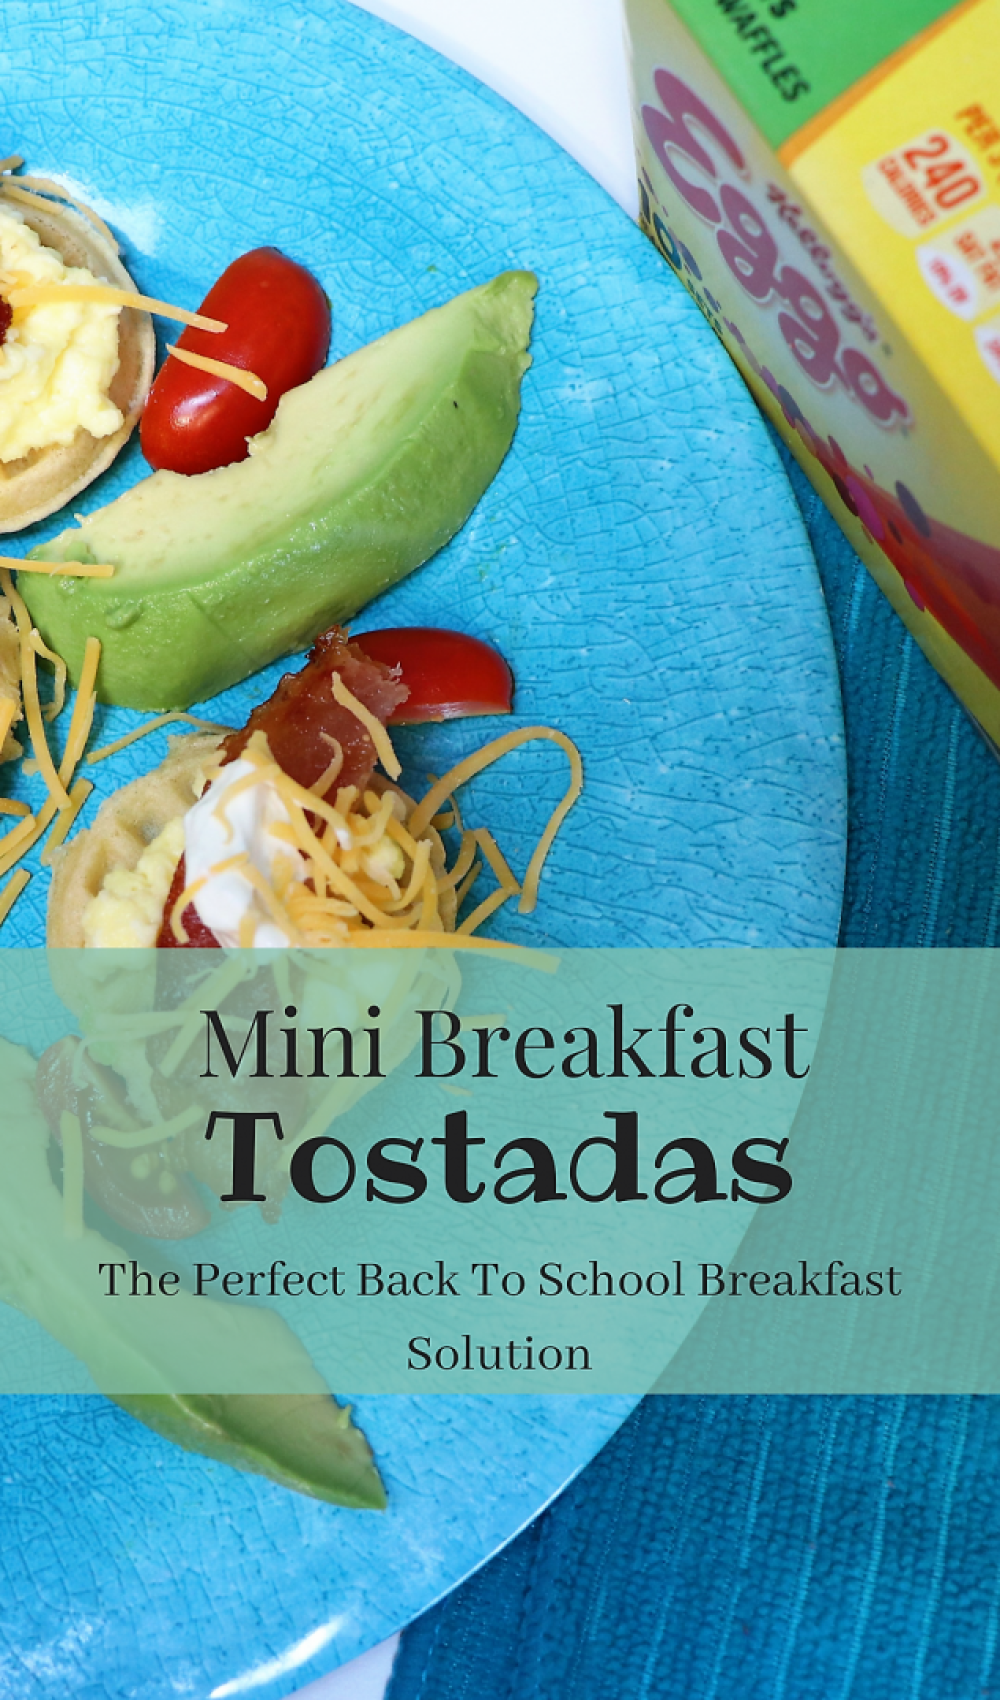 Mini Waffle Breakfast Tostadas. an easy and delicious back to school breakfast idea. This filling and simple breakfast will keep the kids going all morning long! #Ad #LoveMyEggo #ReadingWithEggo